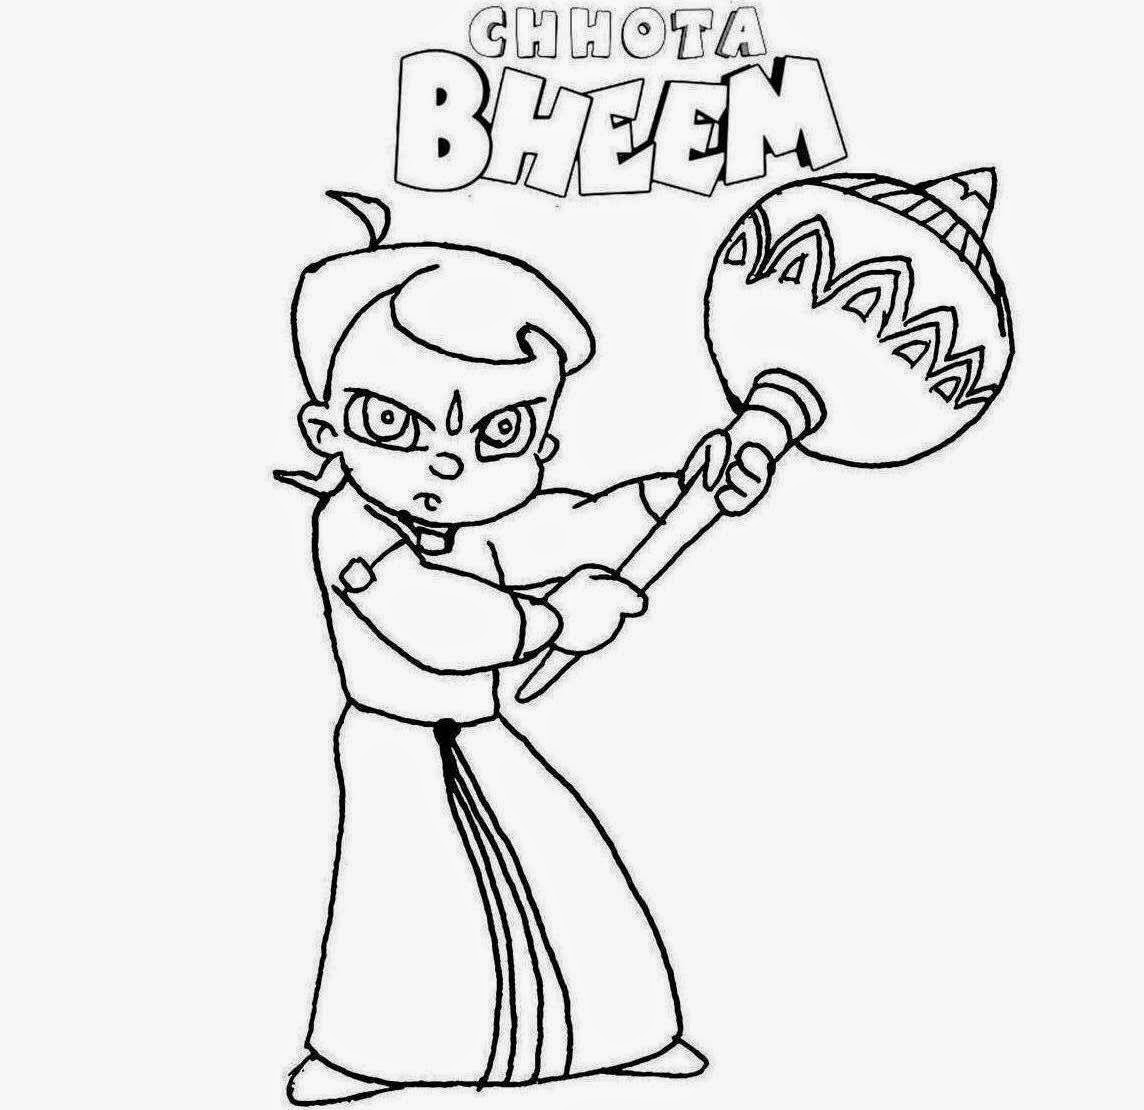 chota bheem drawing for coloring pages | Chota Bheem For Kids Colour Drawing HD Wallpaper - colours ...